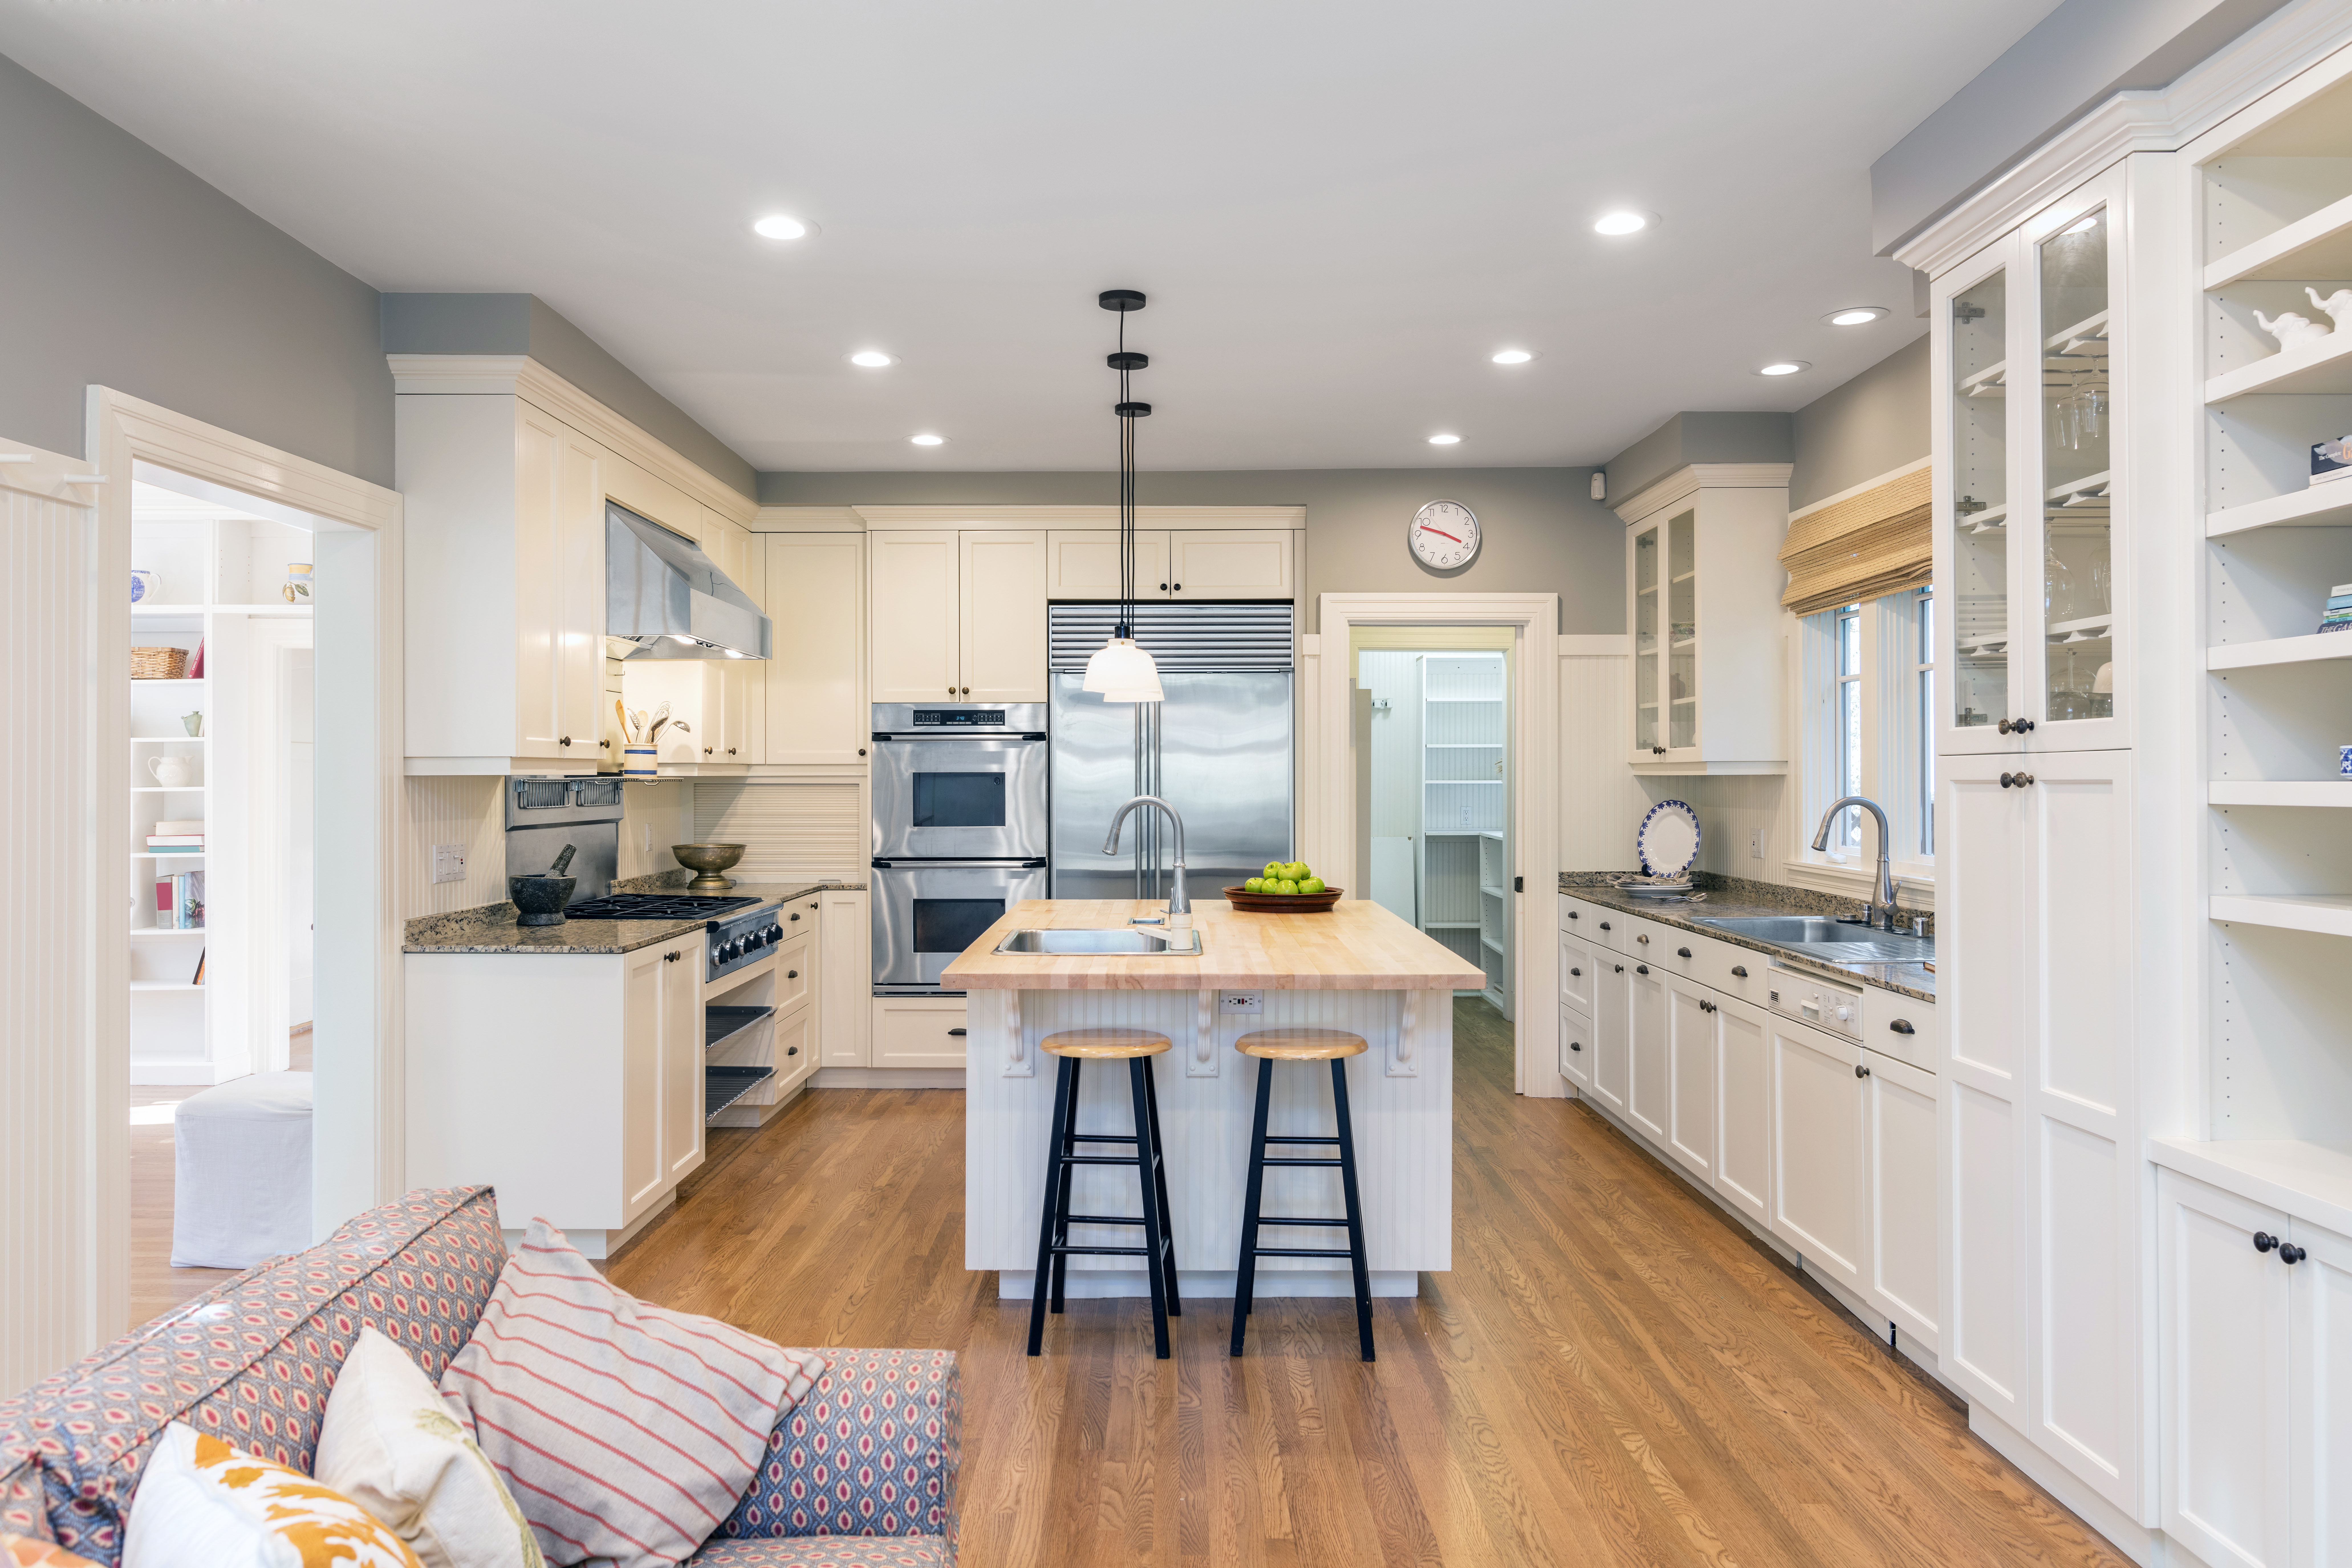 Custom cabinets help to organize your kitchen